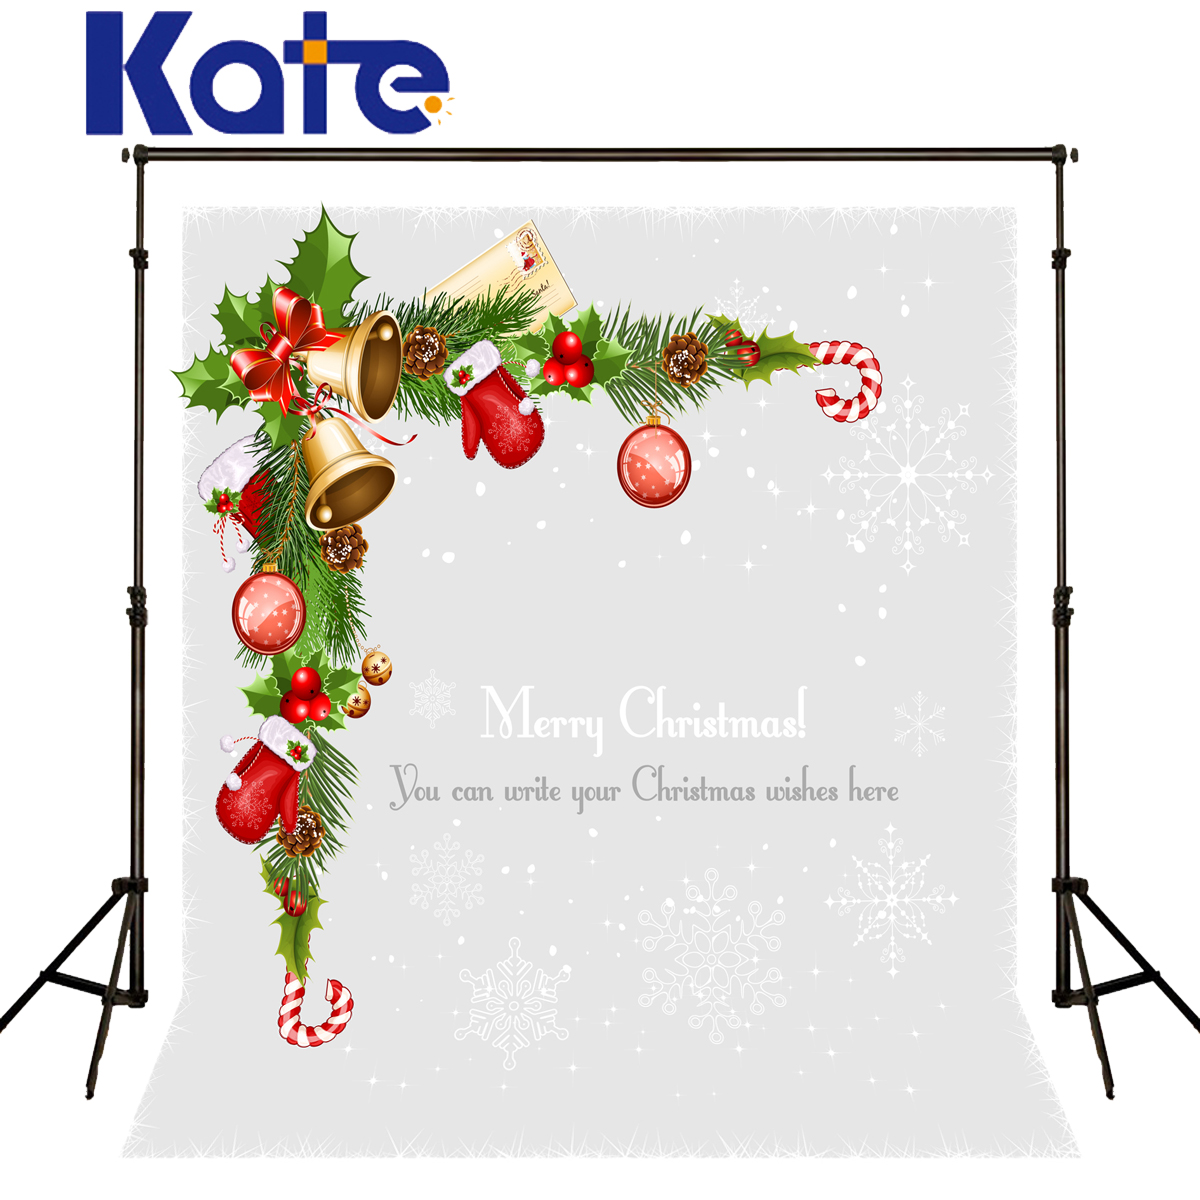 Kate Backdrop Christmas Gold Bell Red Glove Fondo Navidad Snowflake Spot Fond Photographine Noel Backrounds For Photo Studio<br><br>Aliexpress